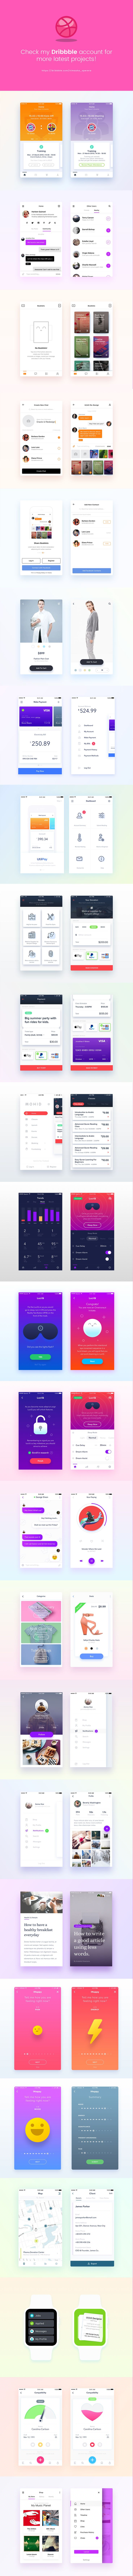 My Latest Work On Dribbble on Behance